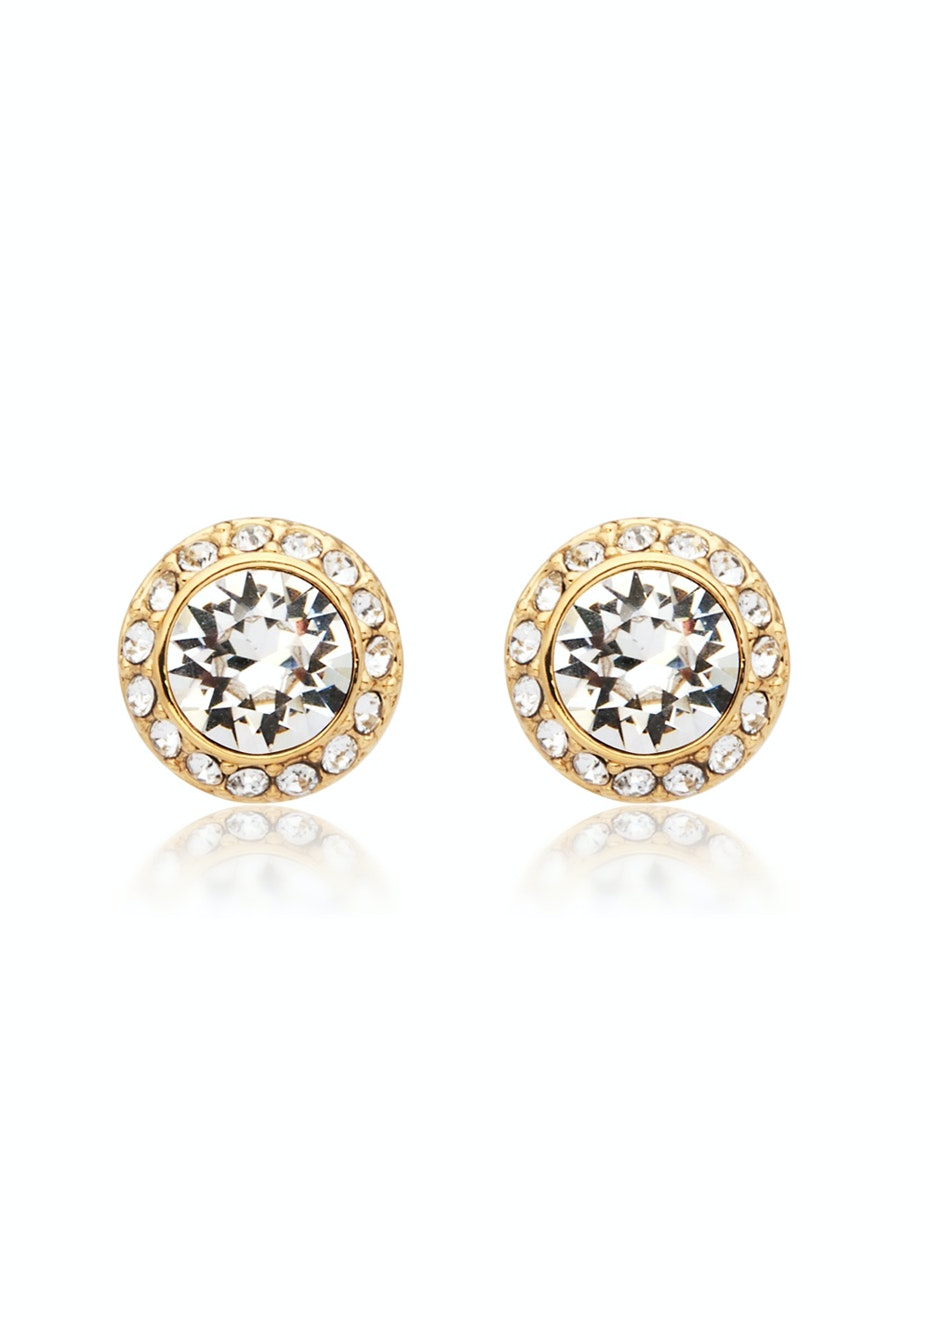 studs w pave surround Embellished with Crystals from Swarovski -GOLD